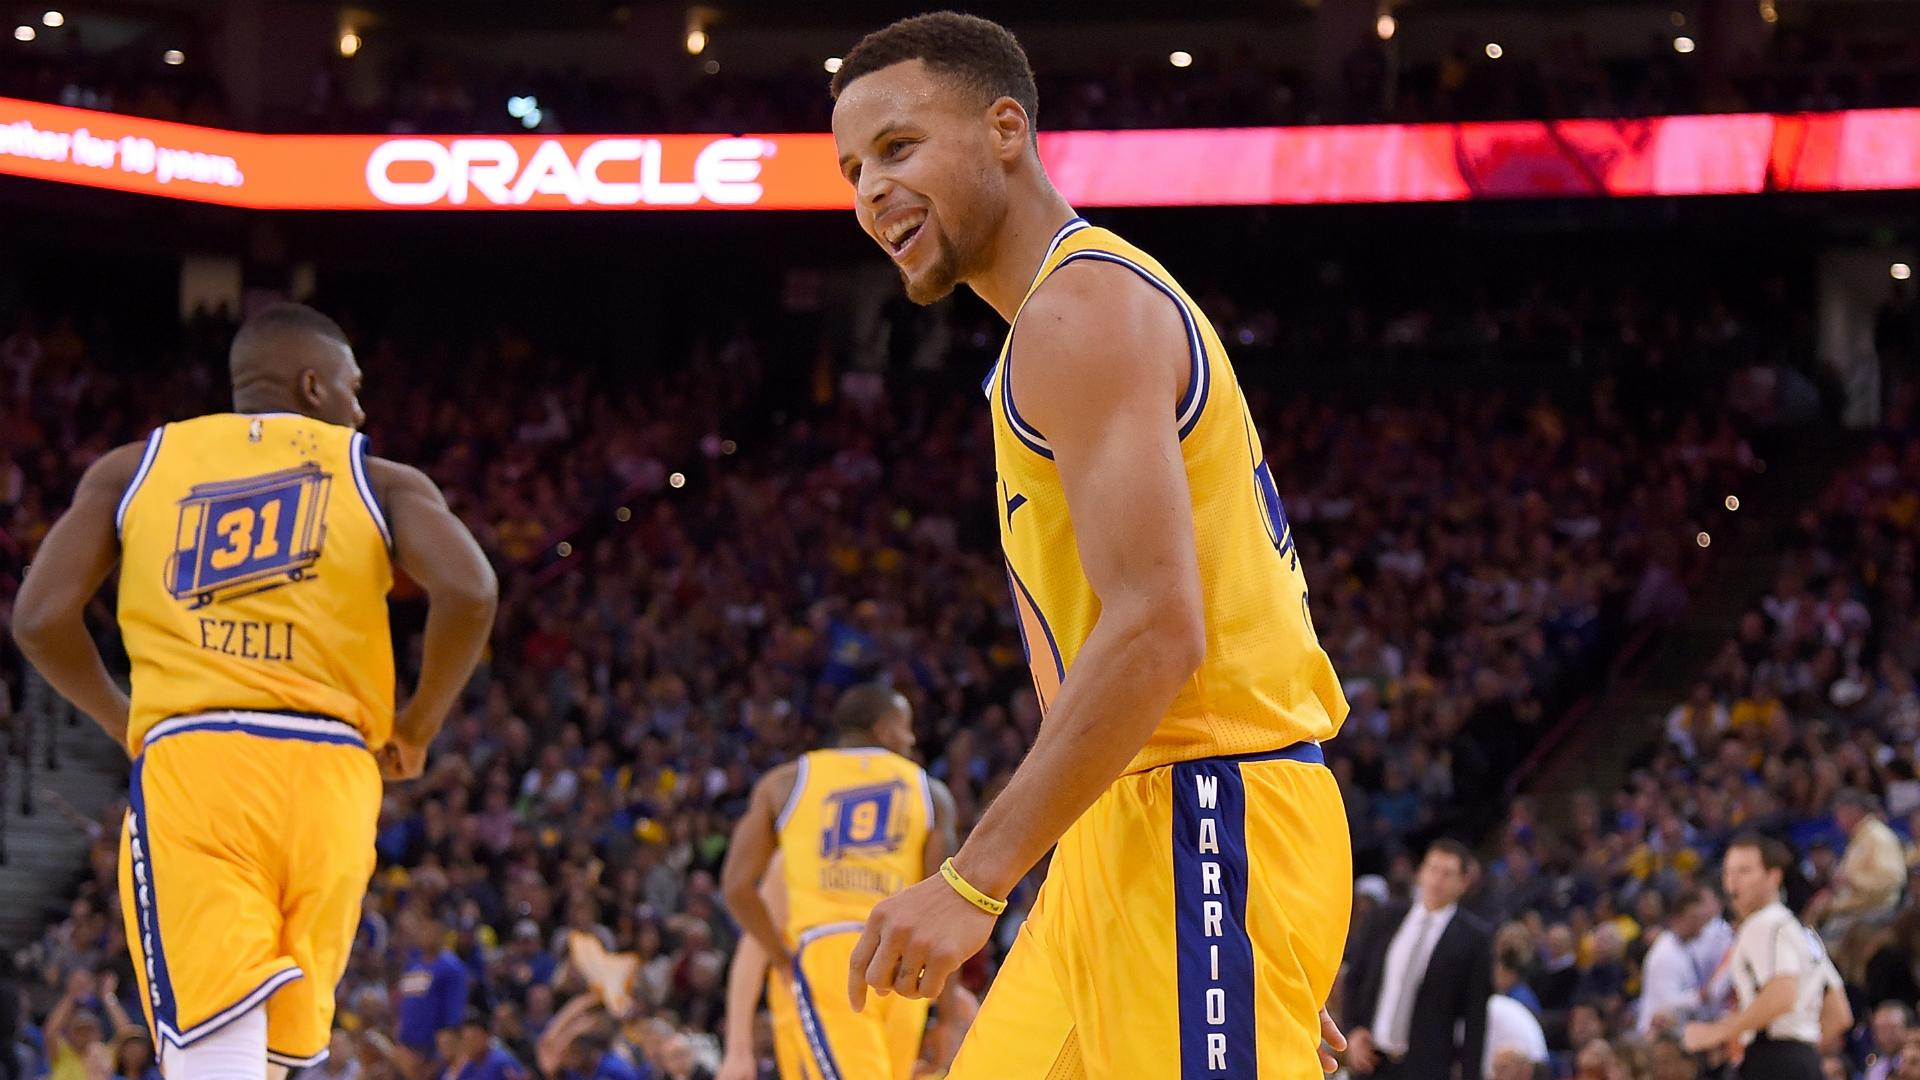 Warriors targeting win-streak record, says Curry